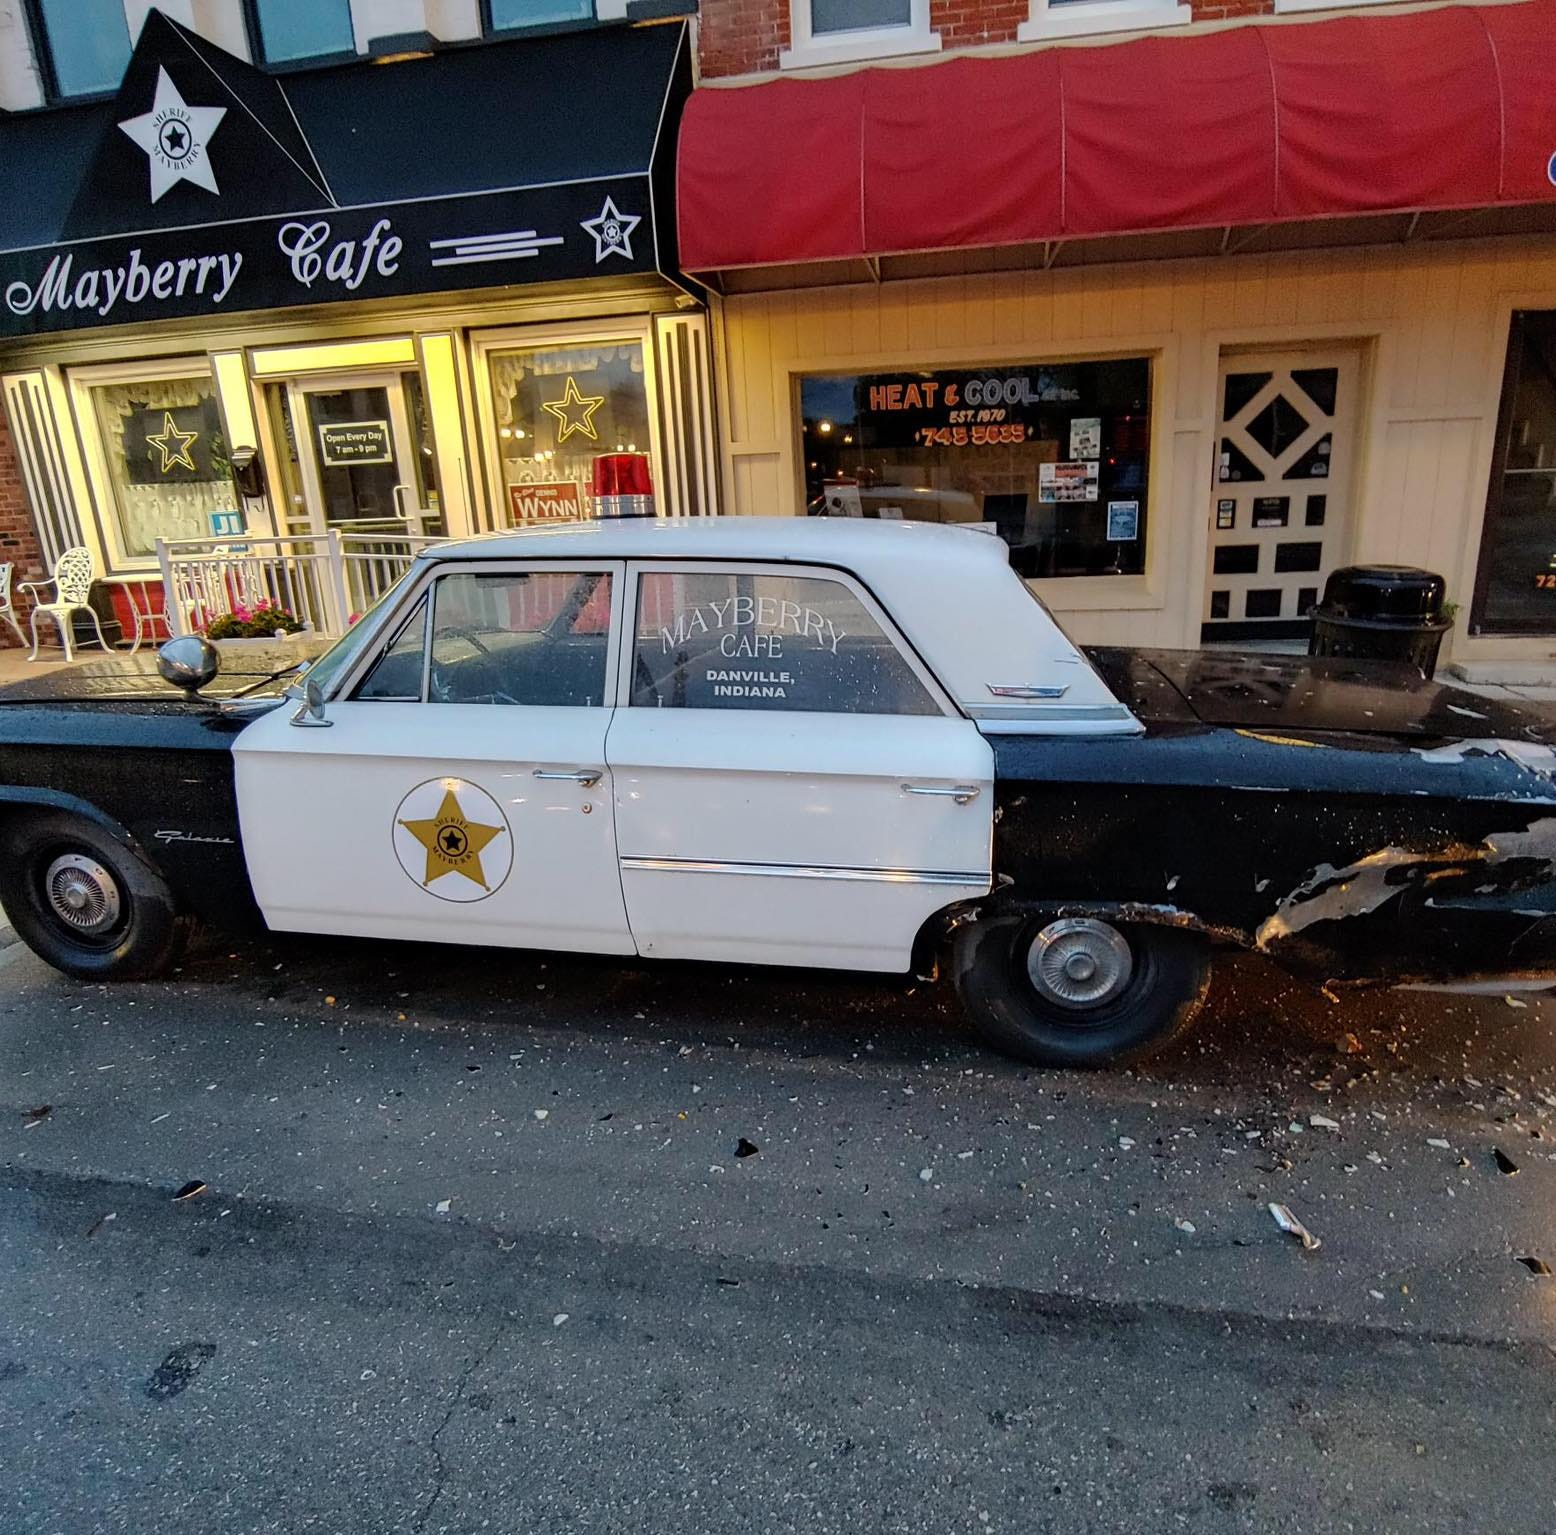 Iconic 'Mayberry Car' in Danville damaged by hit-and-run driver